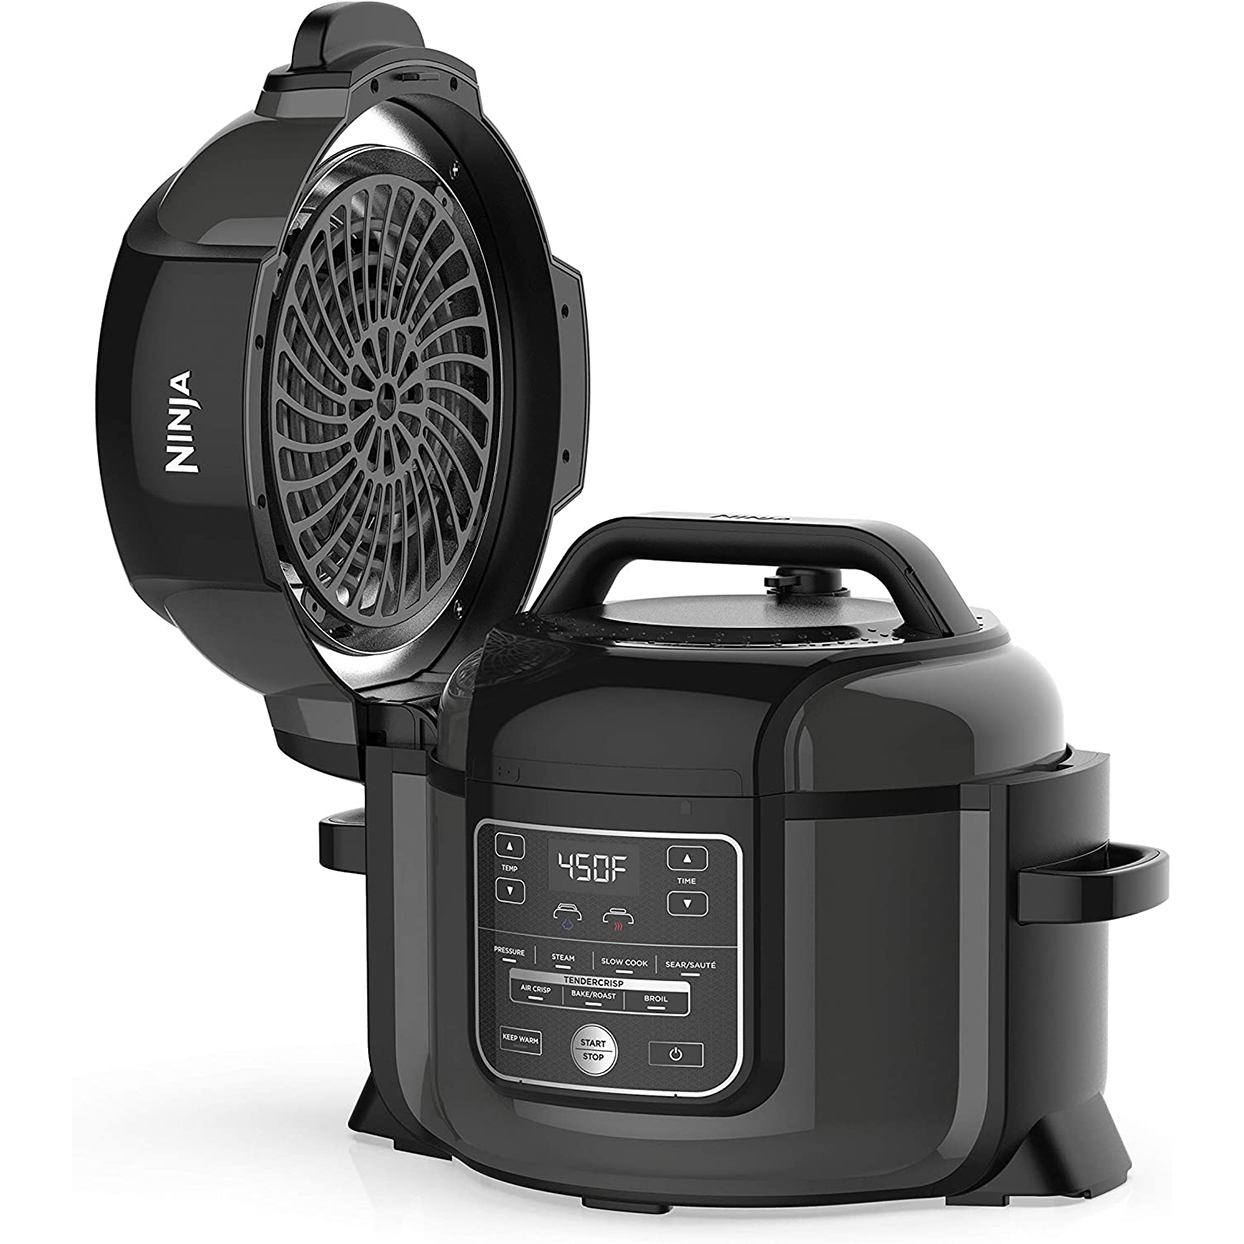 Ninja Foodi 9-in-1 Air Fryer